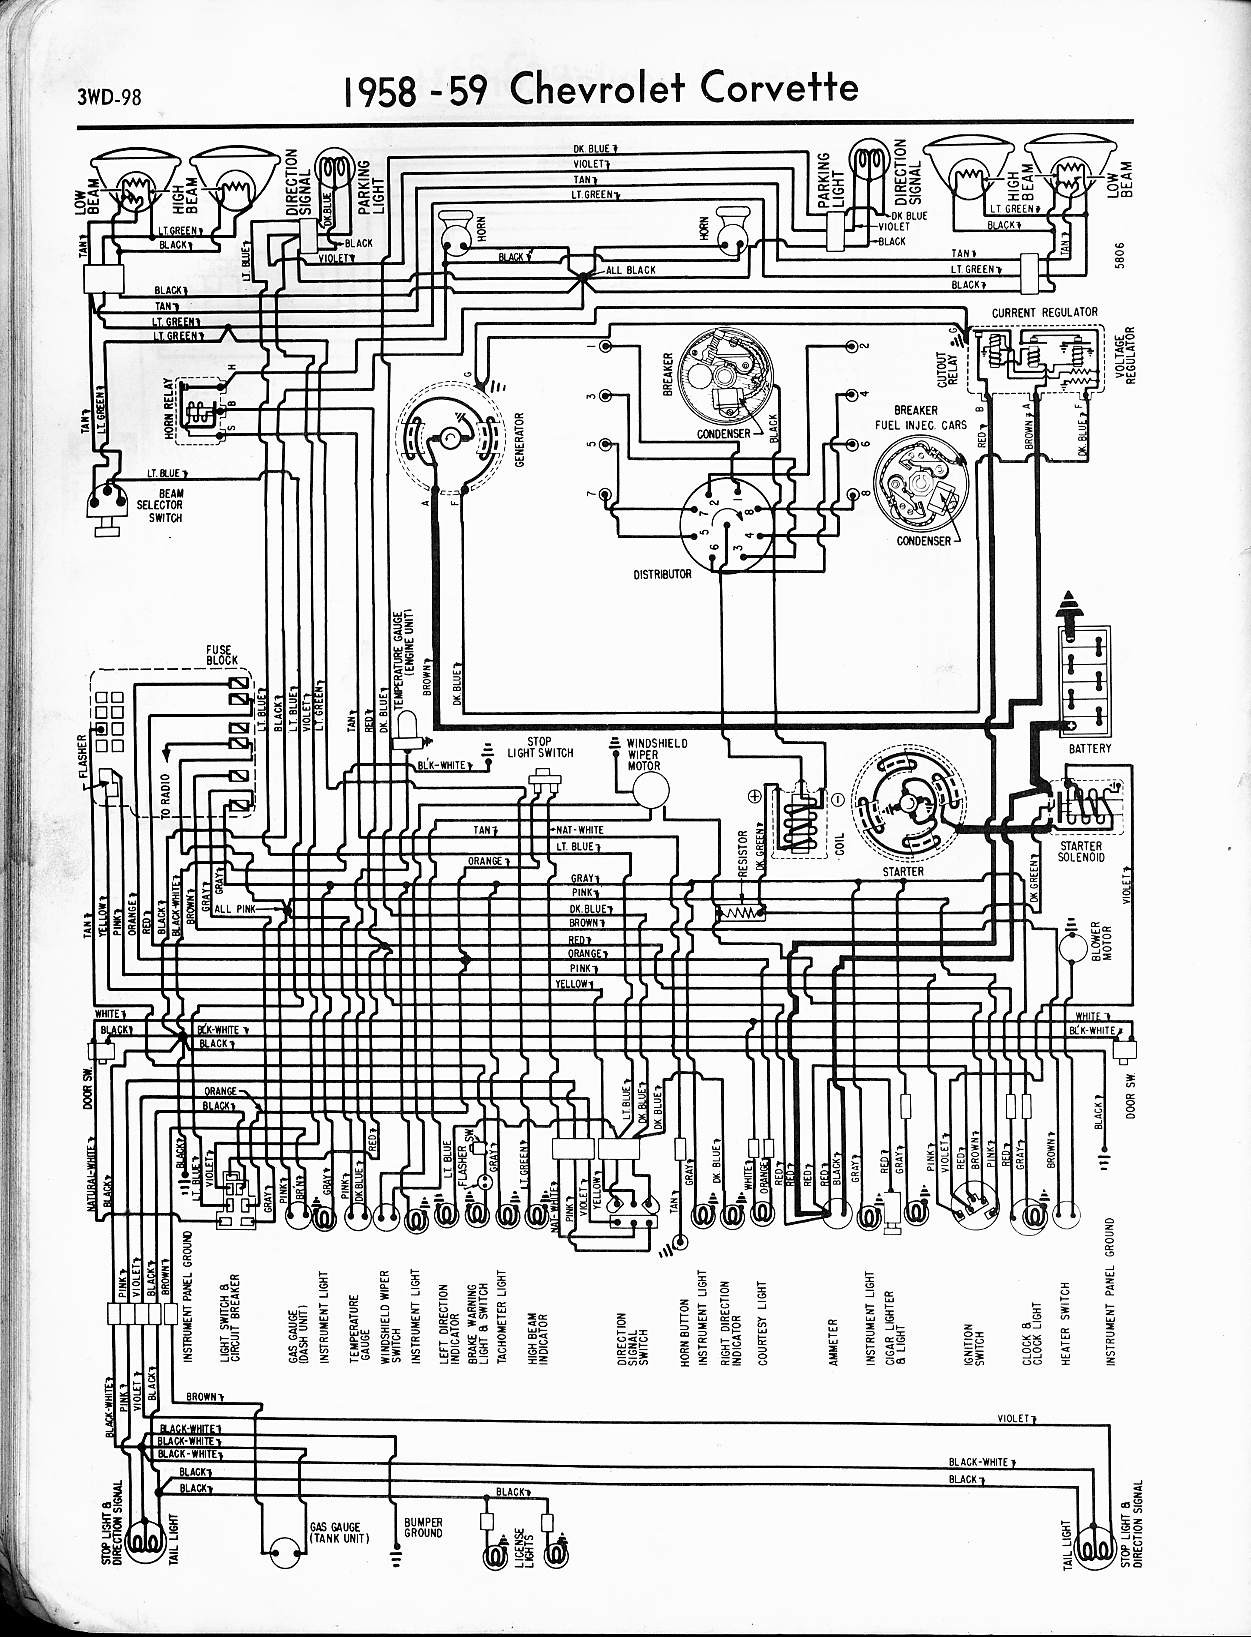 1979 chevy blazer wiring diagram